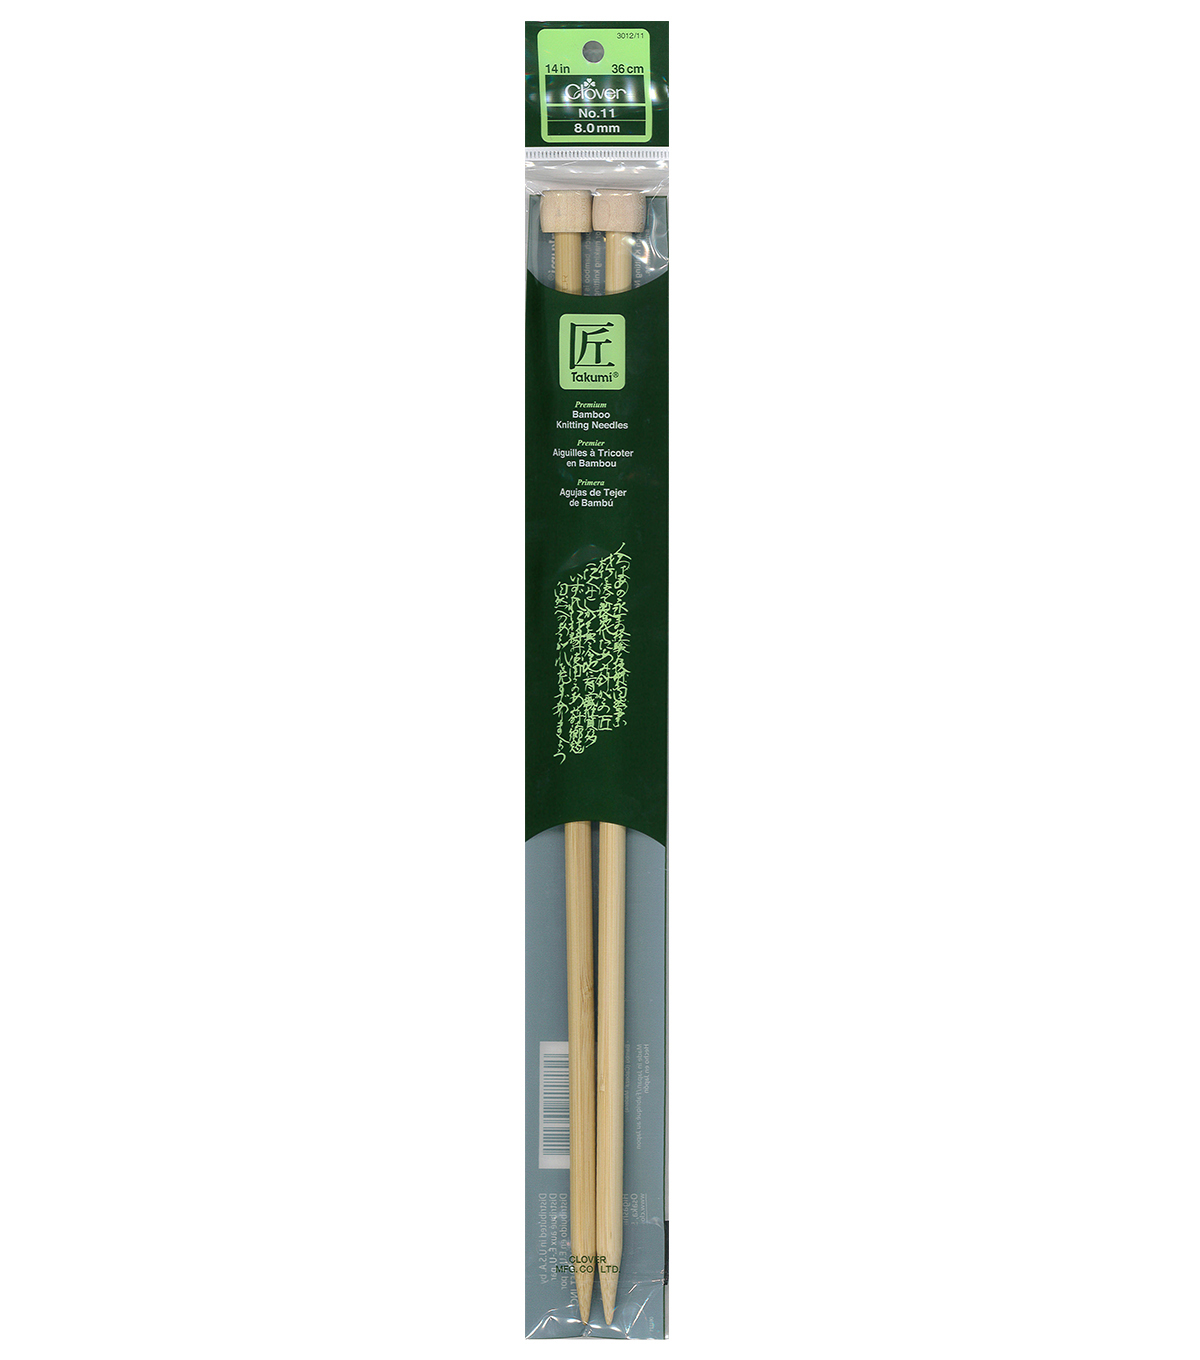 Clover Takumi Bamboo Knit Needle-Single Pt. 13\u0022-Size 11